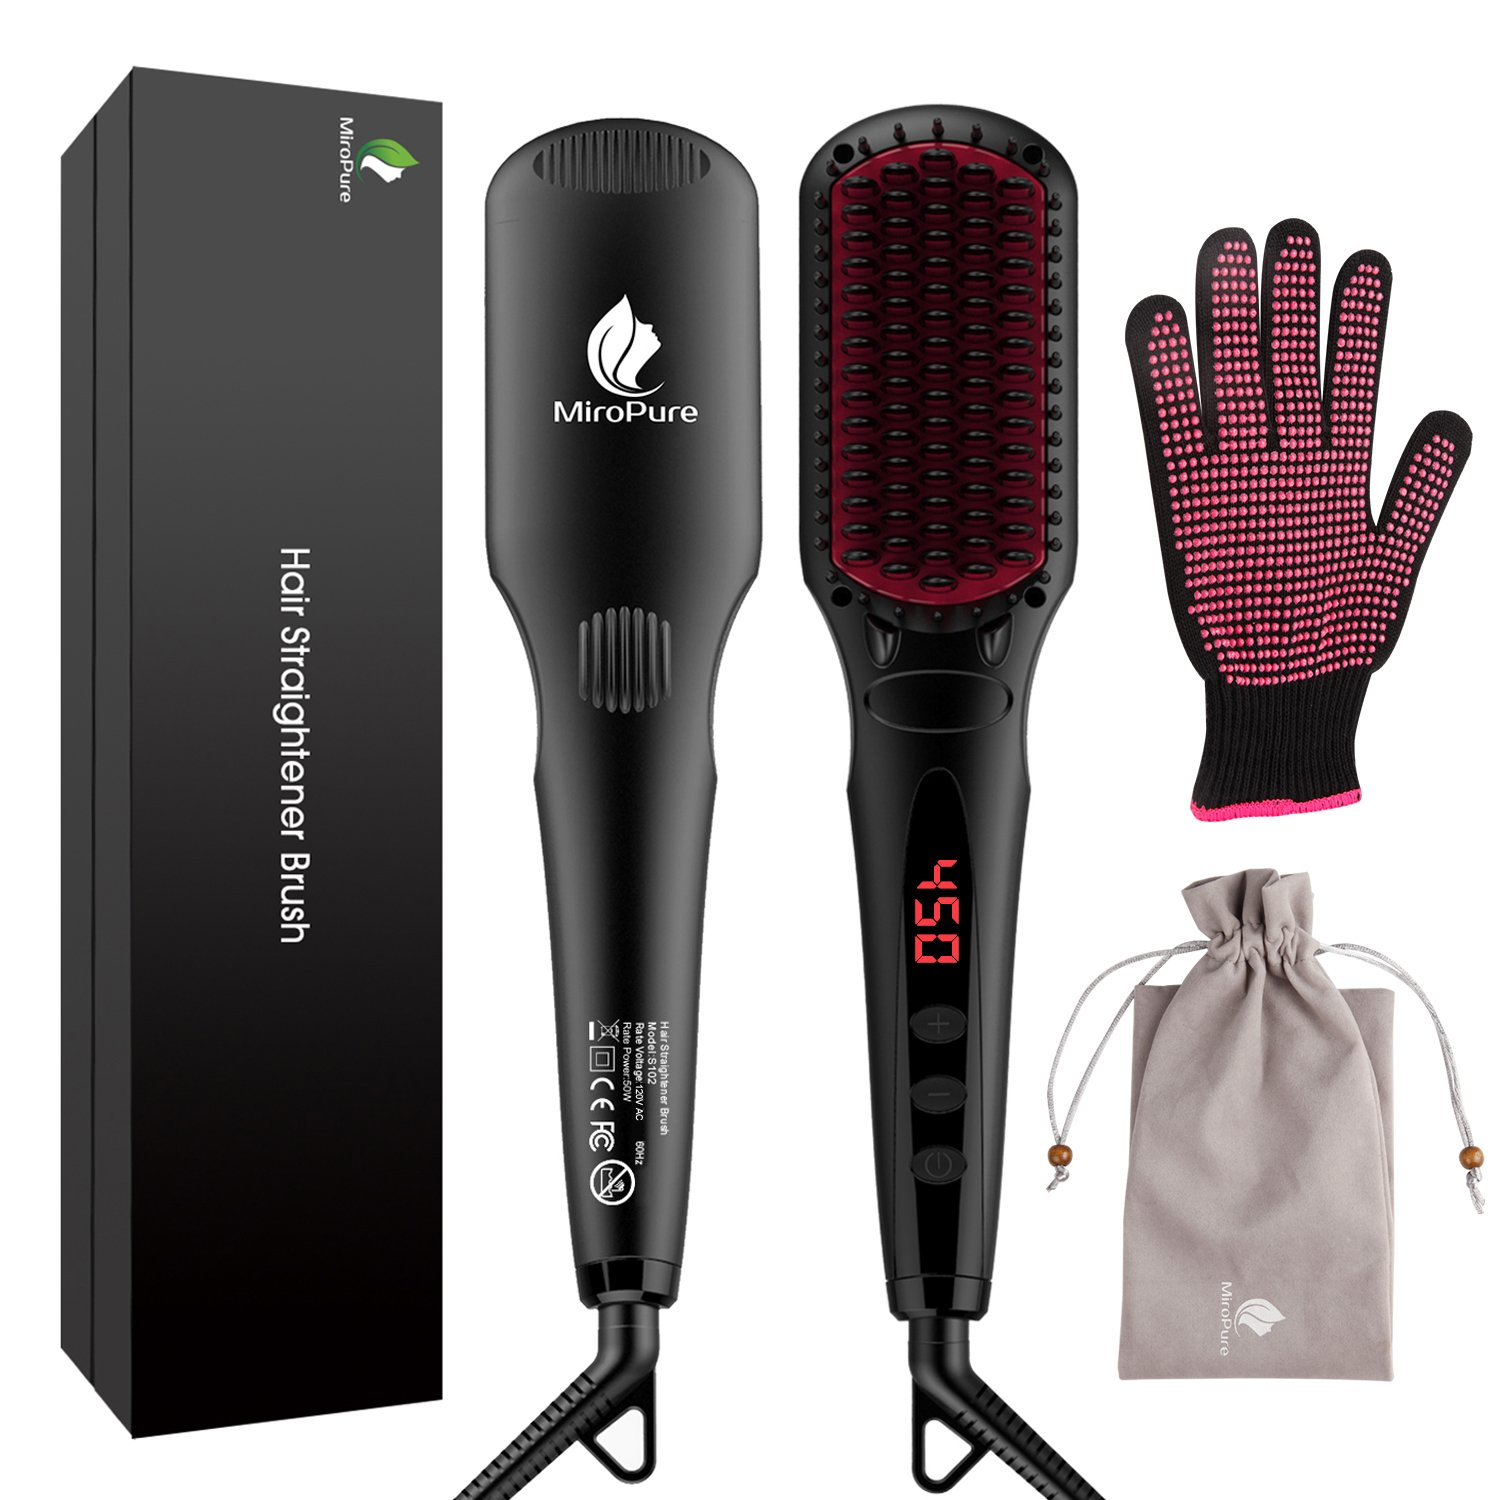 Enhanced Hair Straightener Brush by MiroPure, 2-in-1 Ionic Straightening Brush with Anti-Scald Feature, Auto Temperature Lock and Auto-off Function (Black)